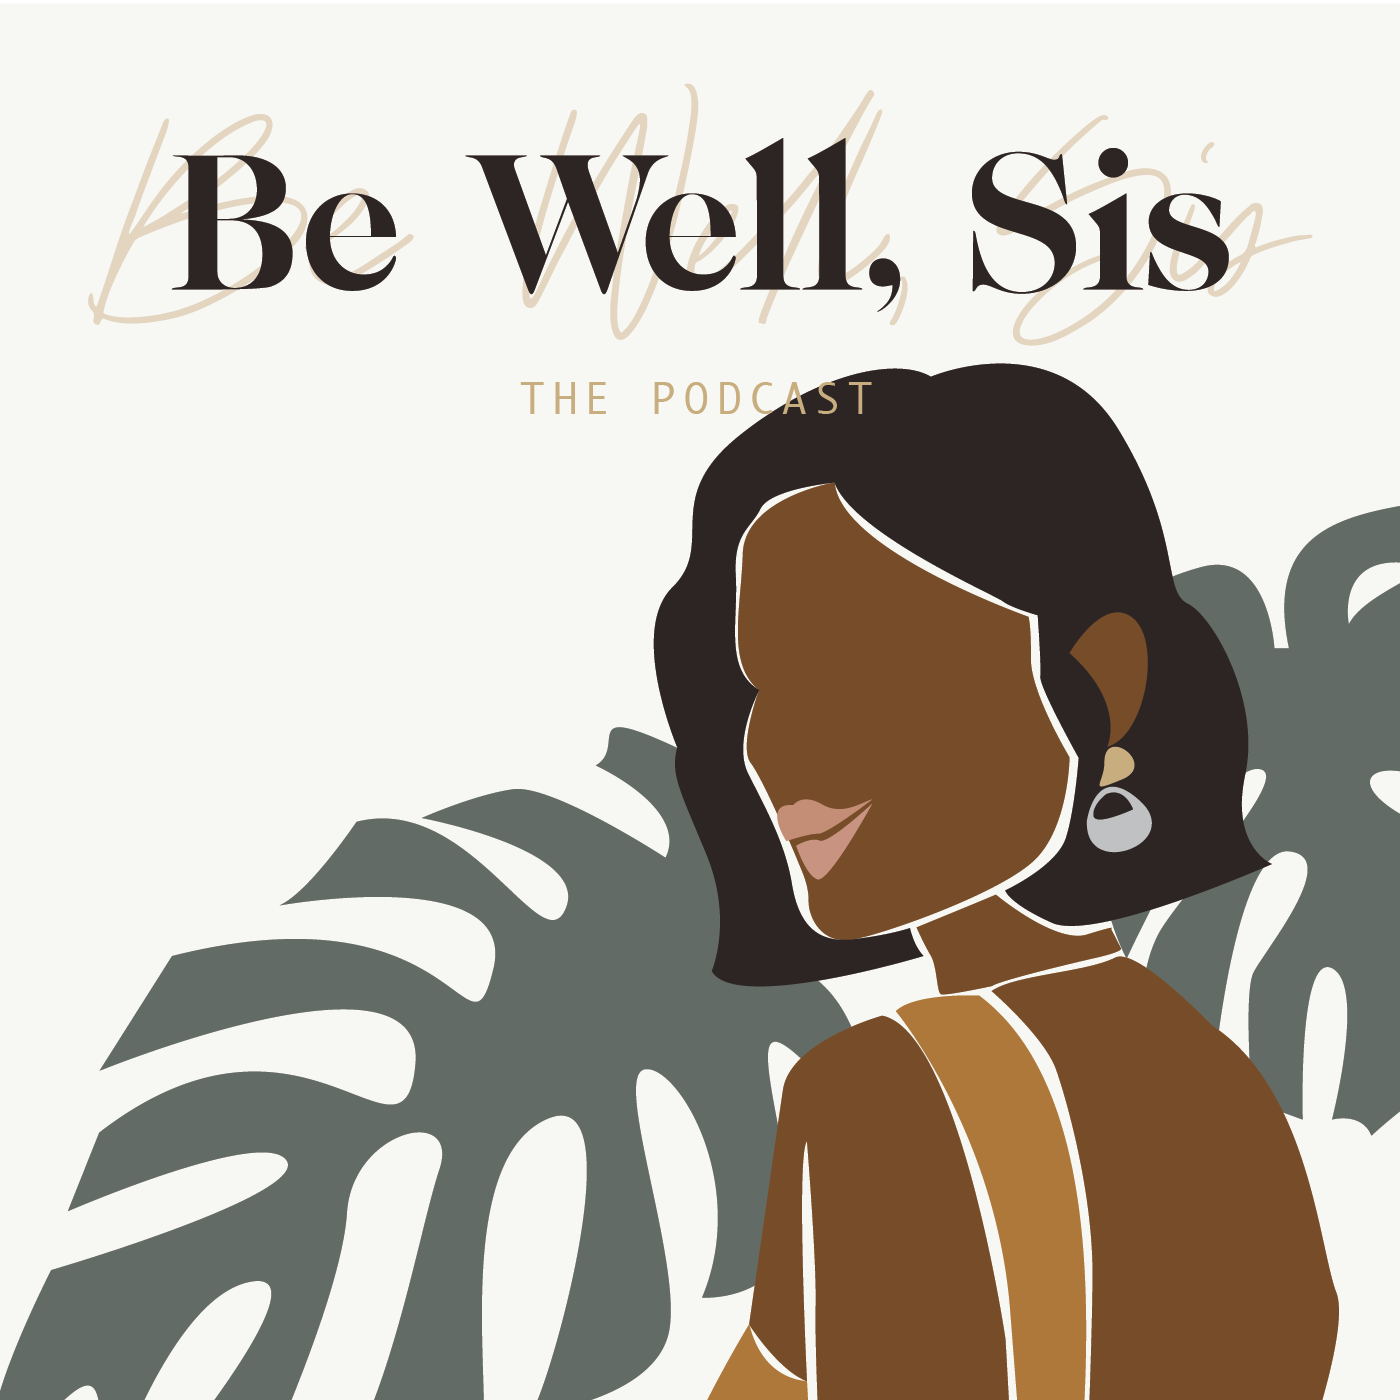 Be Well, Sis